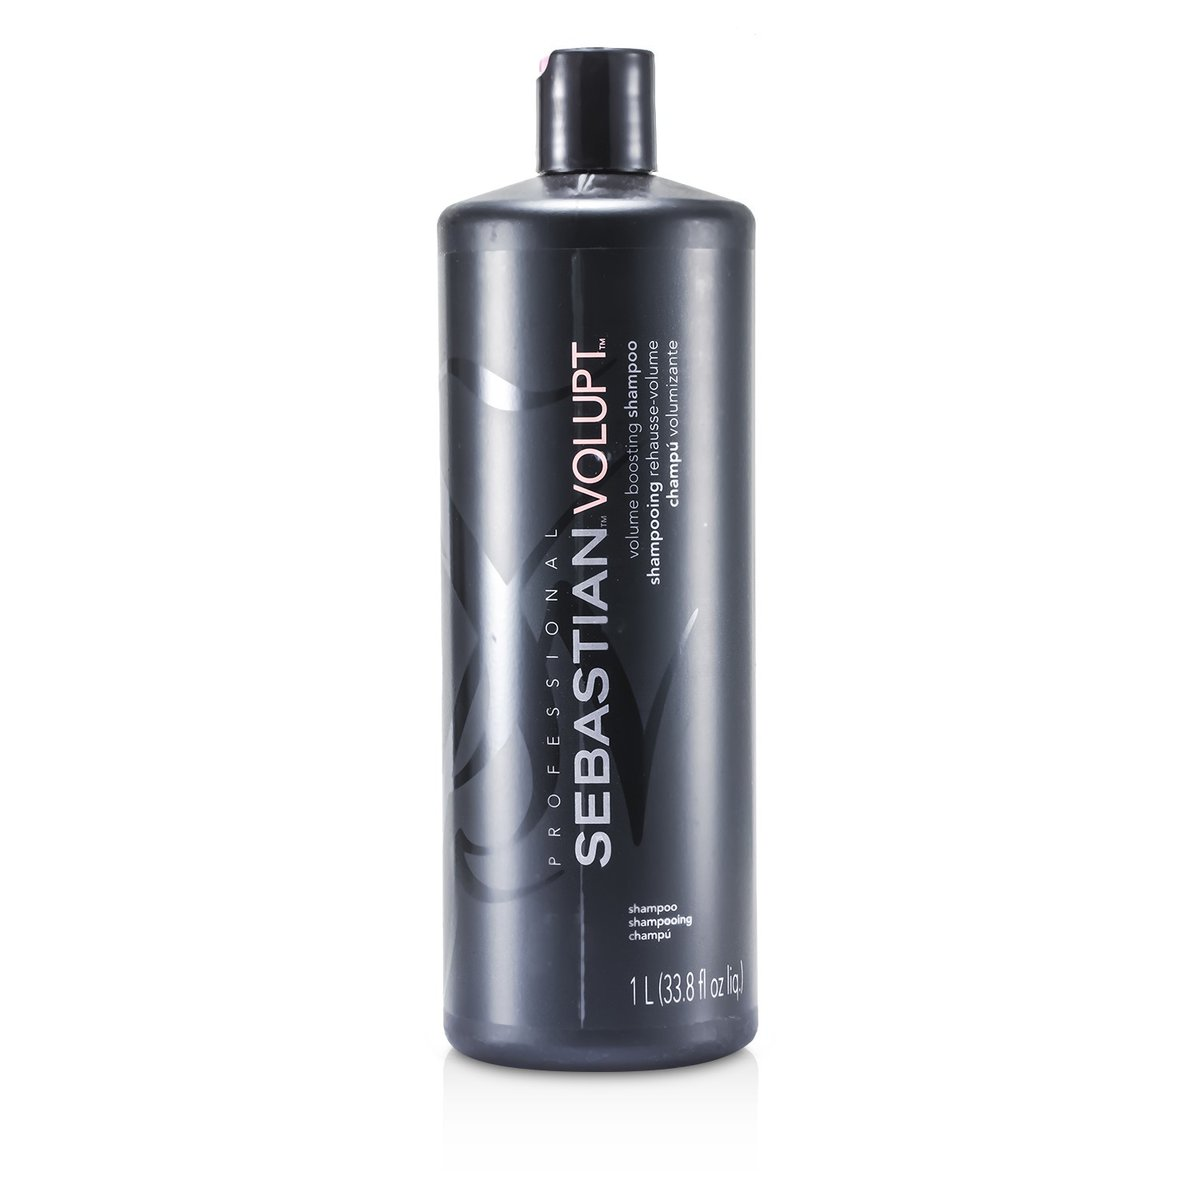 Volupt Volume Boosting Shampoo -[Parallel Import Product]